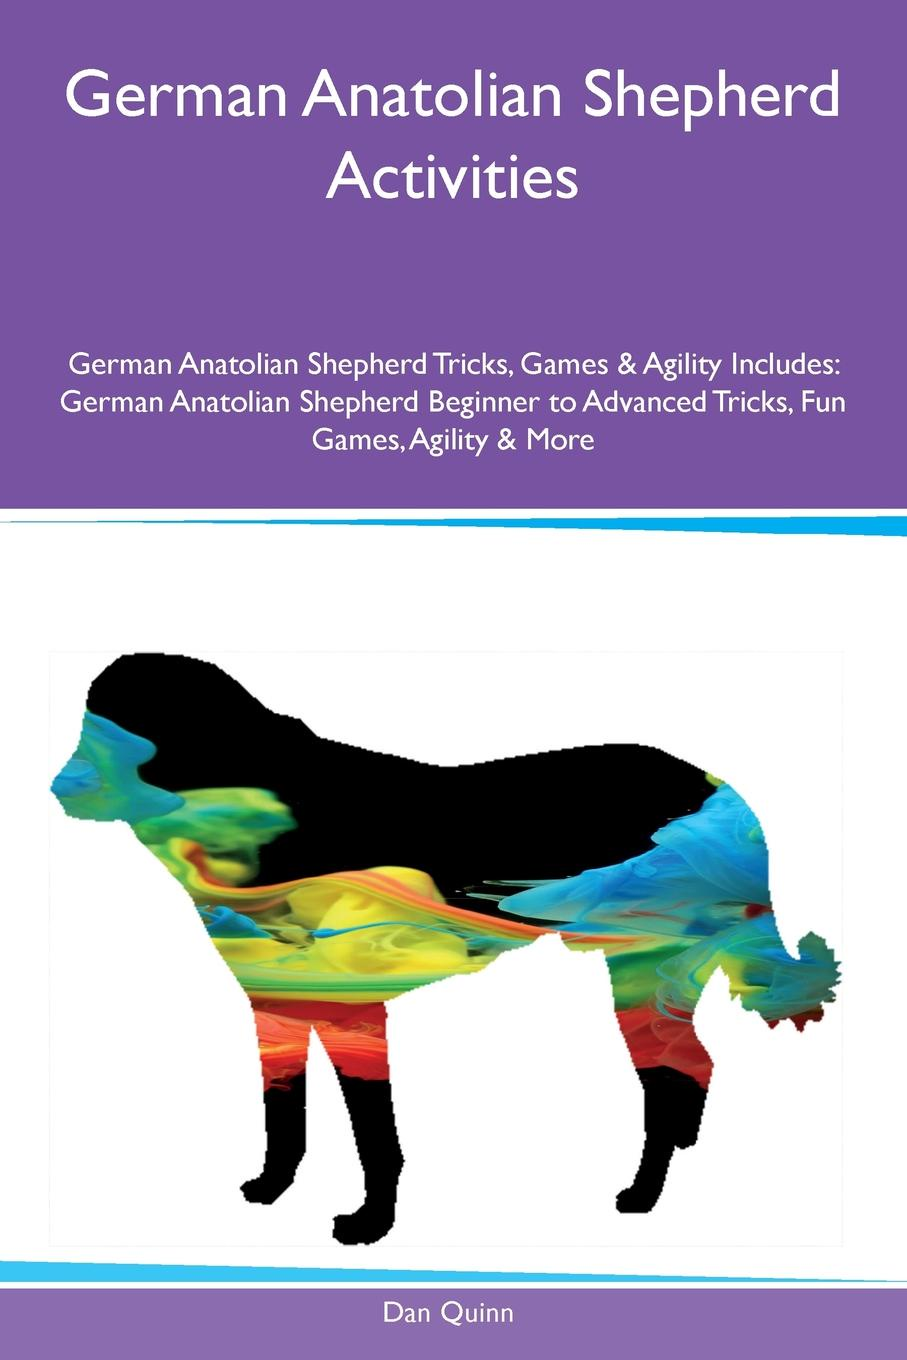 Dan Quinn German Anatolian Shepherd Activities German Anatolian Shepherd Tricks, Games & Agility Includes. German Anatolian Shepherd Beginner to Advanced Tricks, Fun Games, Agility & More games bis german a1